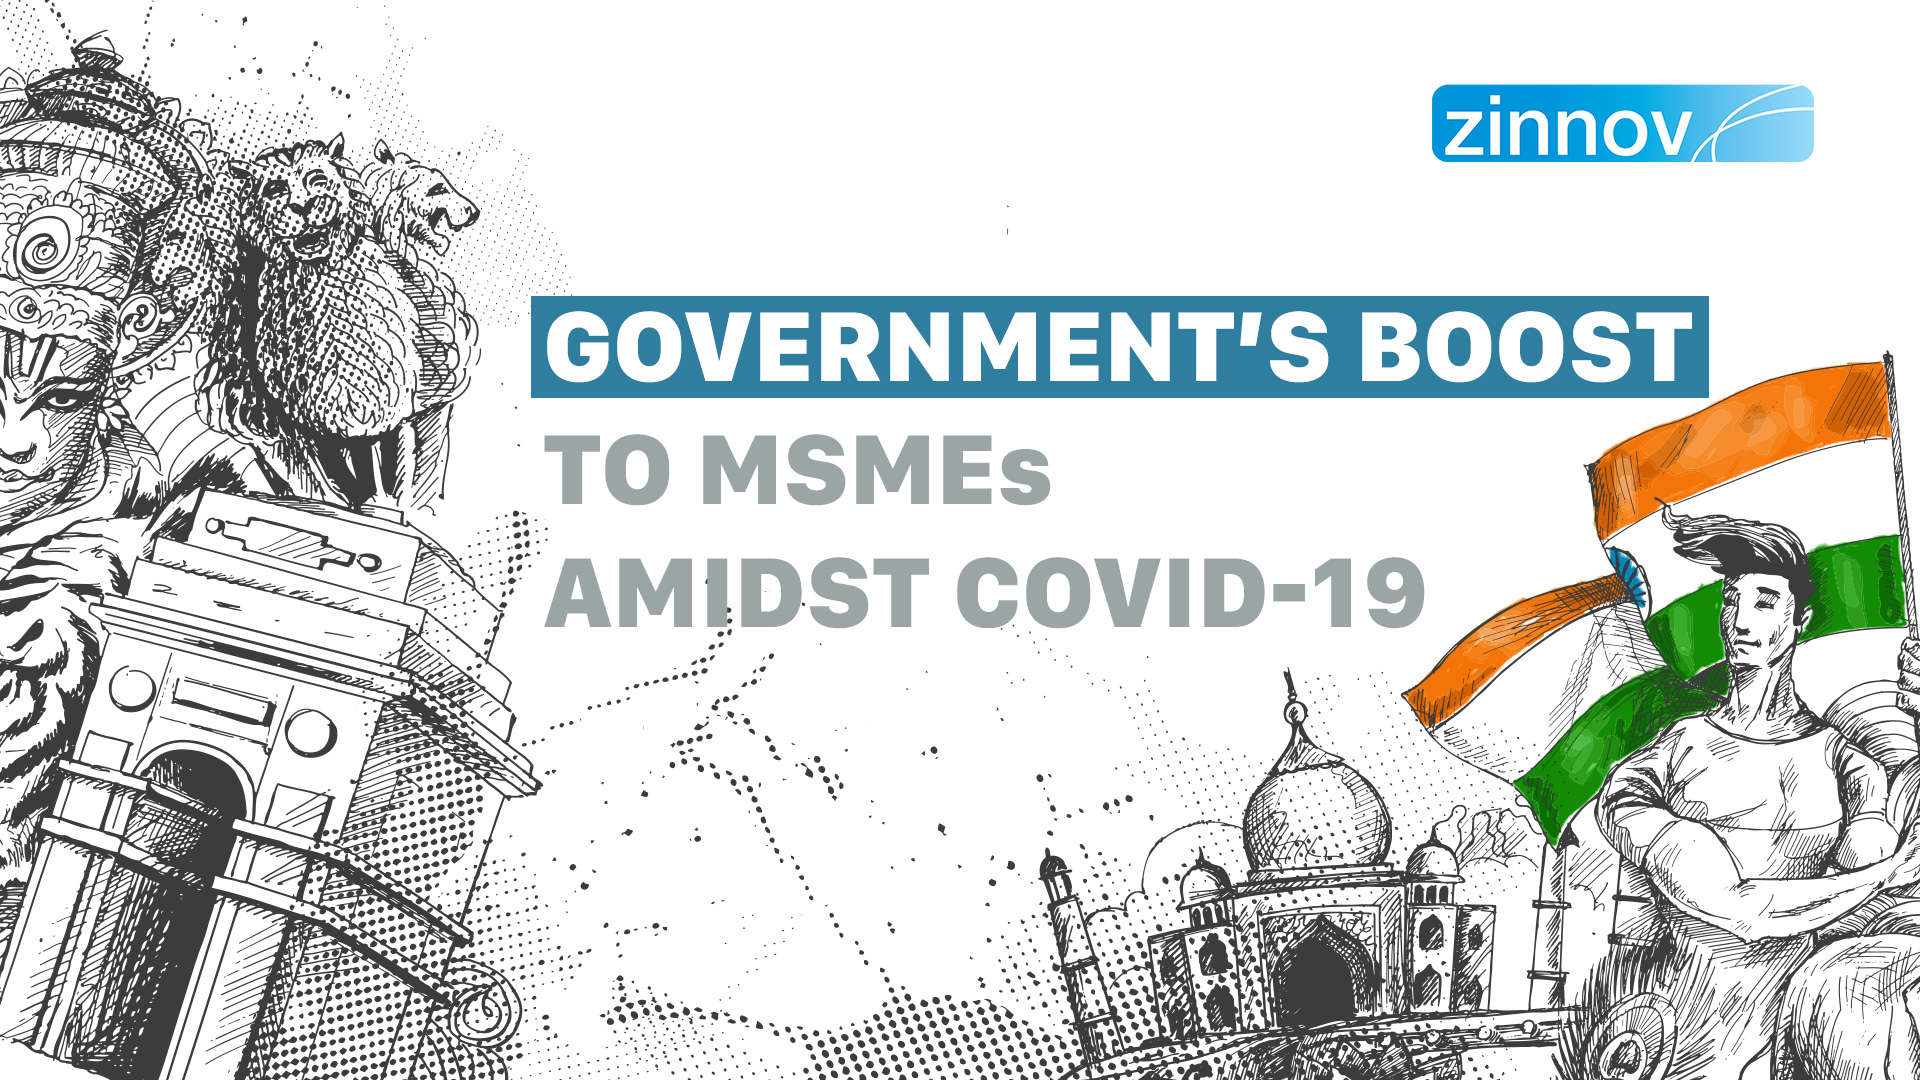 Impact of COVID-19 on Indian SMBs